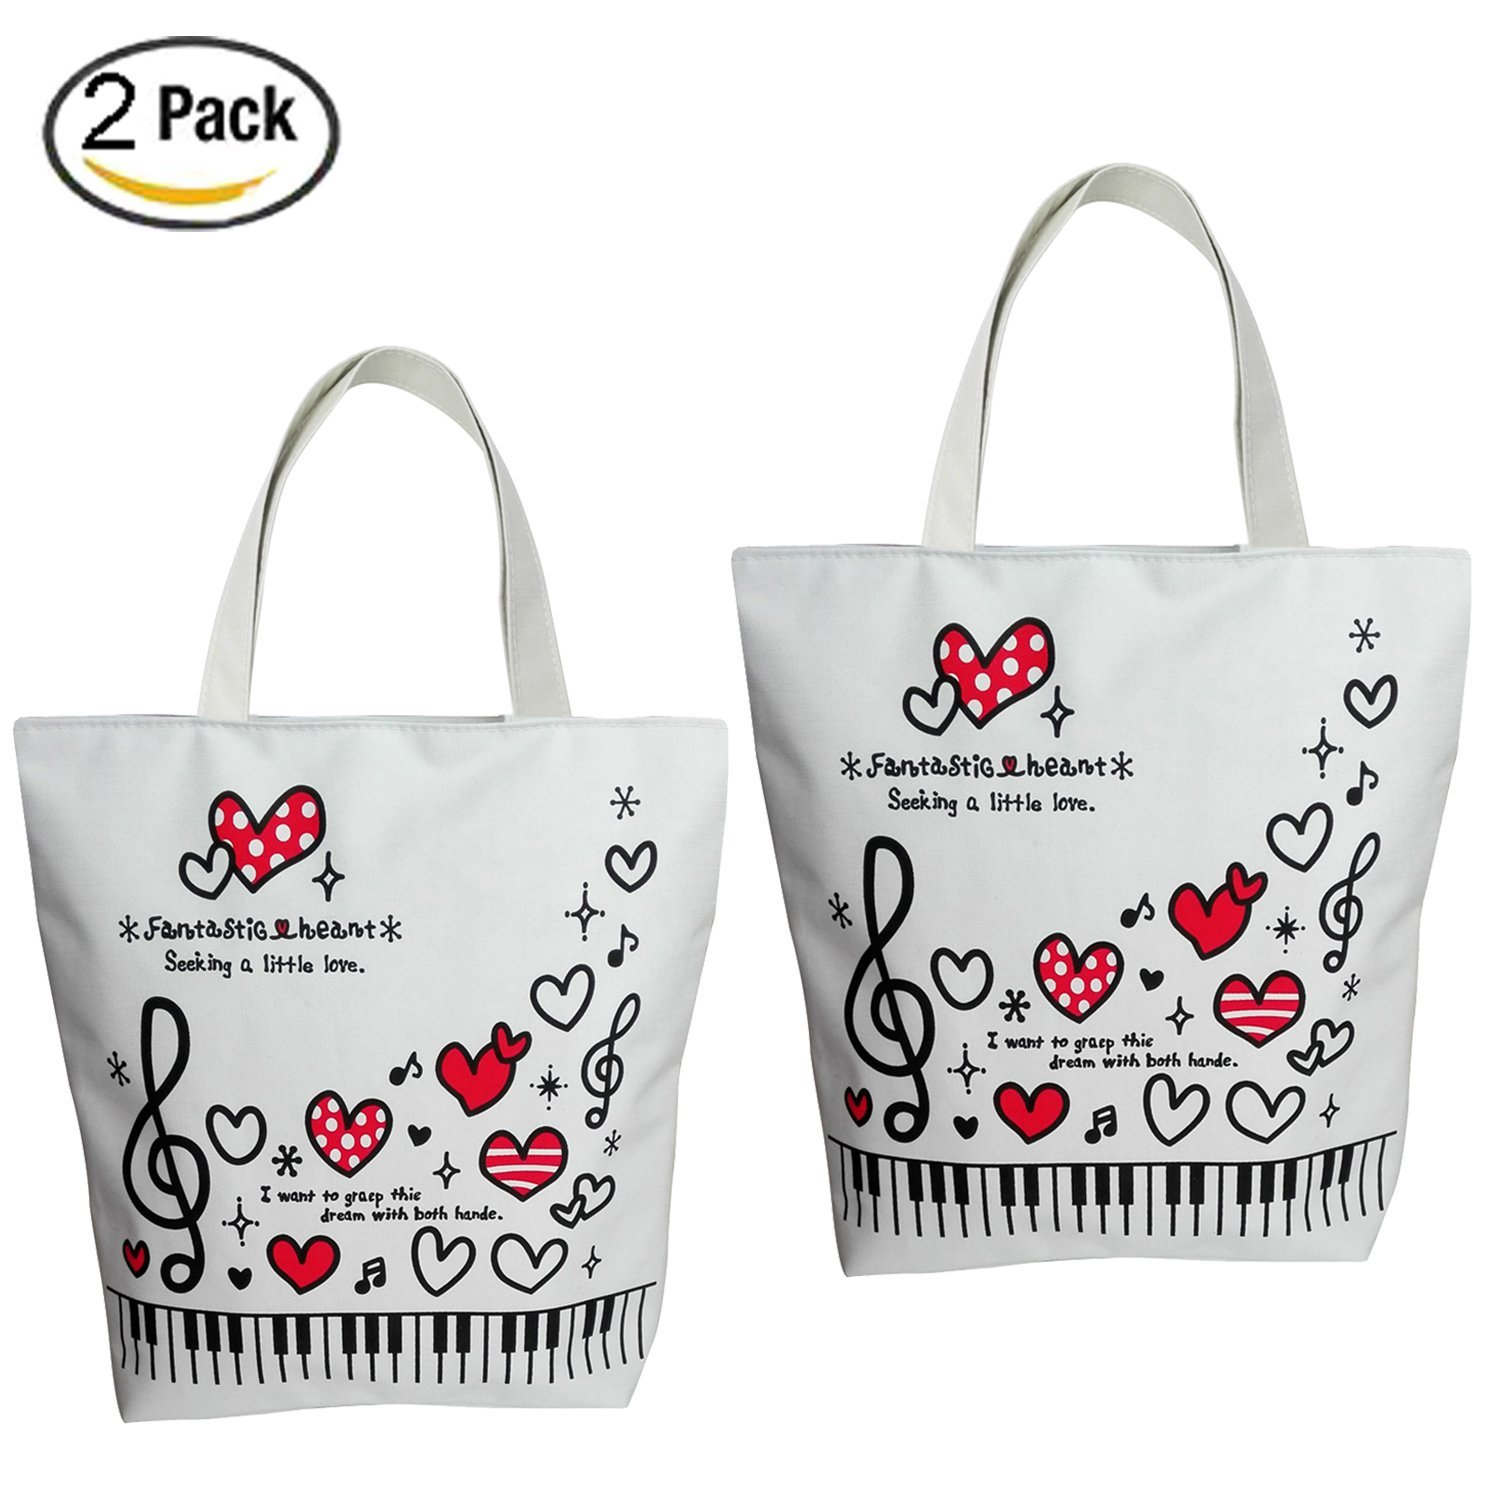 Sound Harbor Music Symbols Print Canvas Tote Music Element Handbag Shoulder Shopping Bags, Music Book Bag and Gift of music lovers (2Pack Red Love)